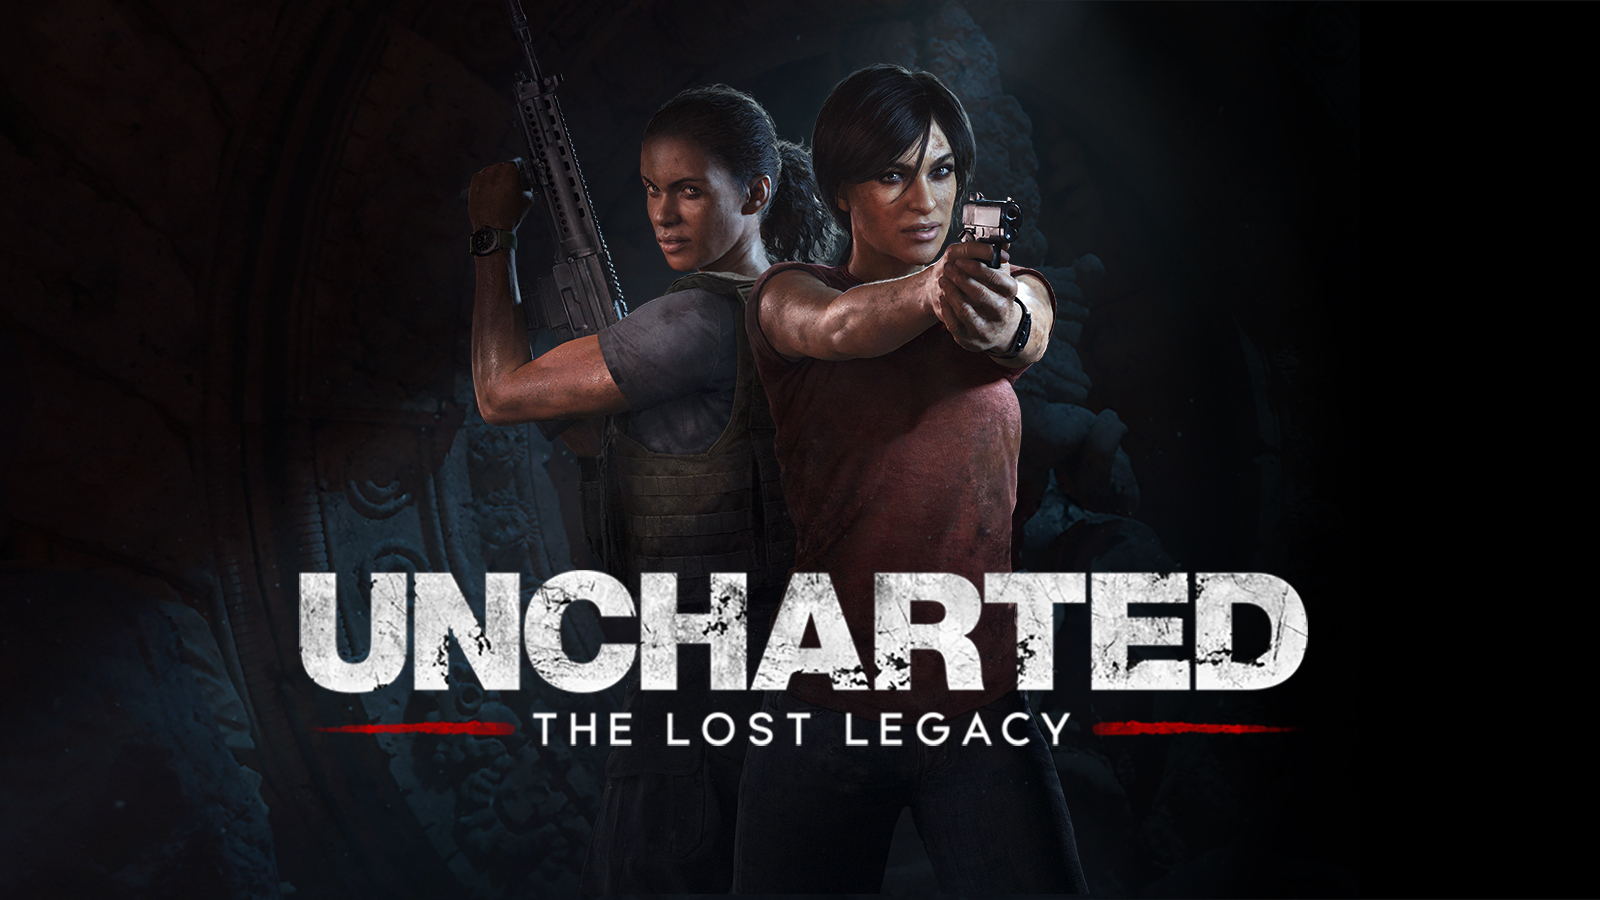 usr_img/2017-09/ajout/uncharted-the-lost-legacy-listing-thumb-01-ps4-us-05dec16.png